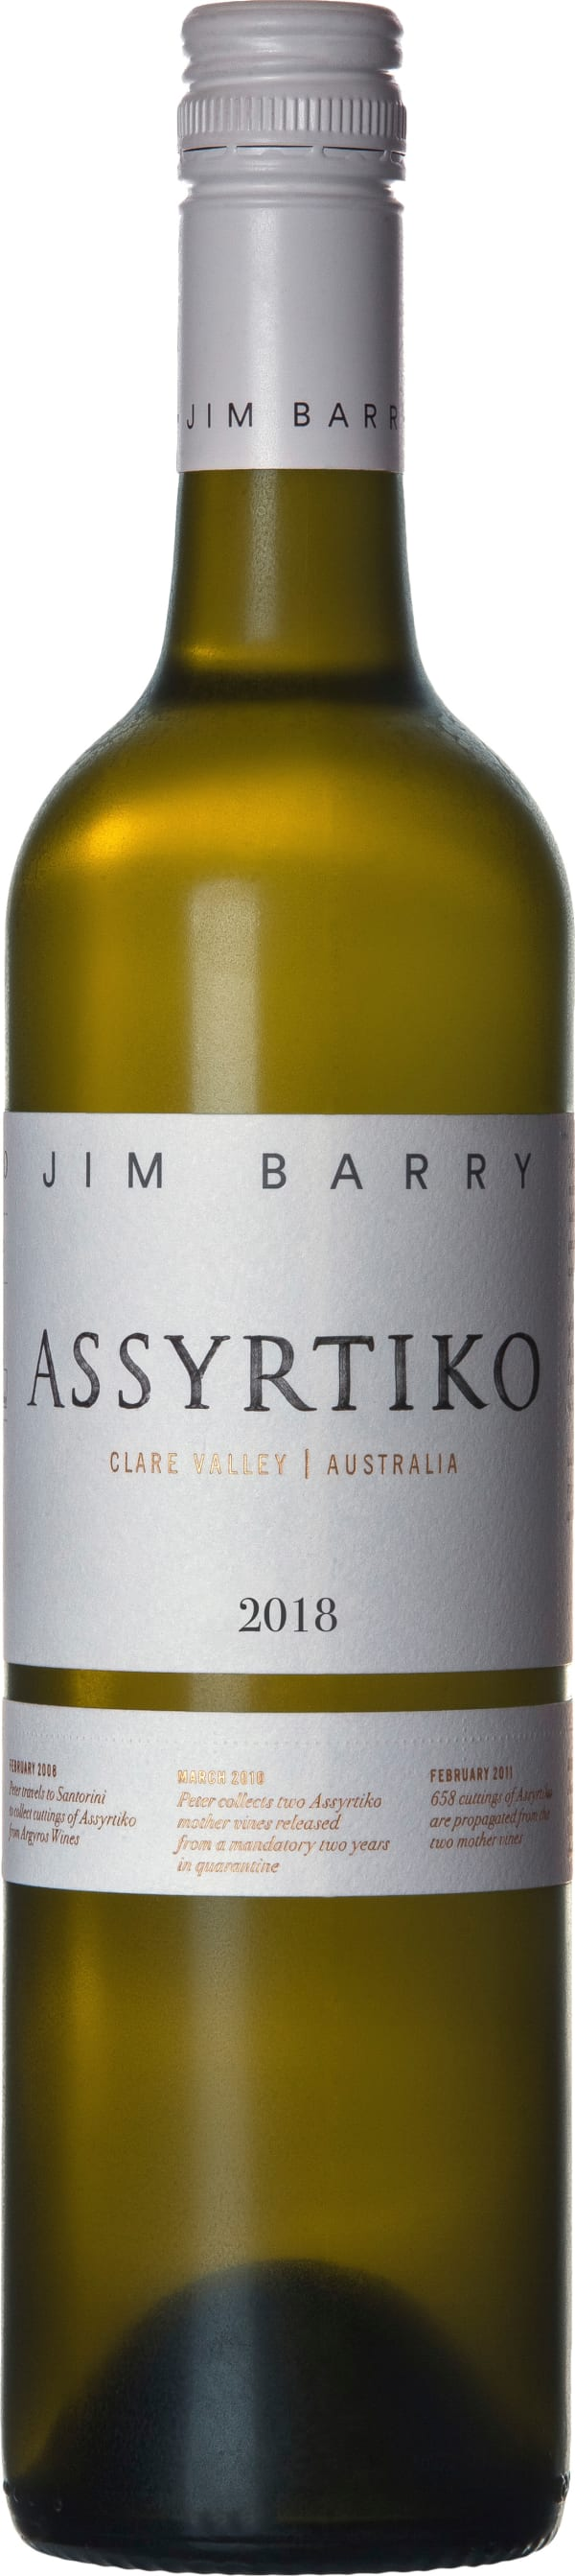 Jim Barry Assyrtiko 2018